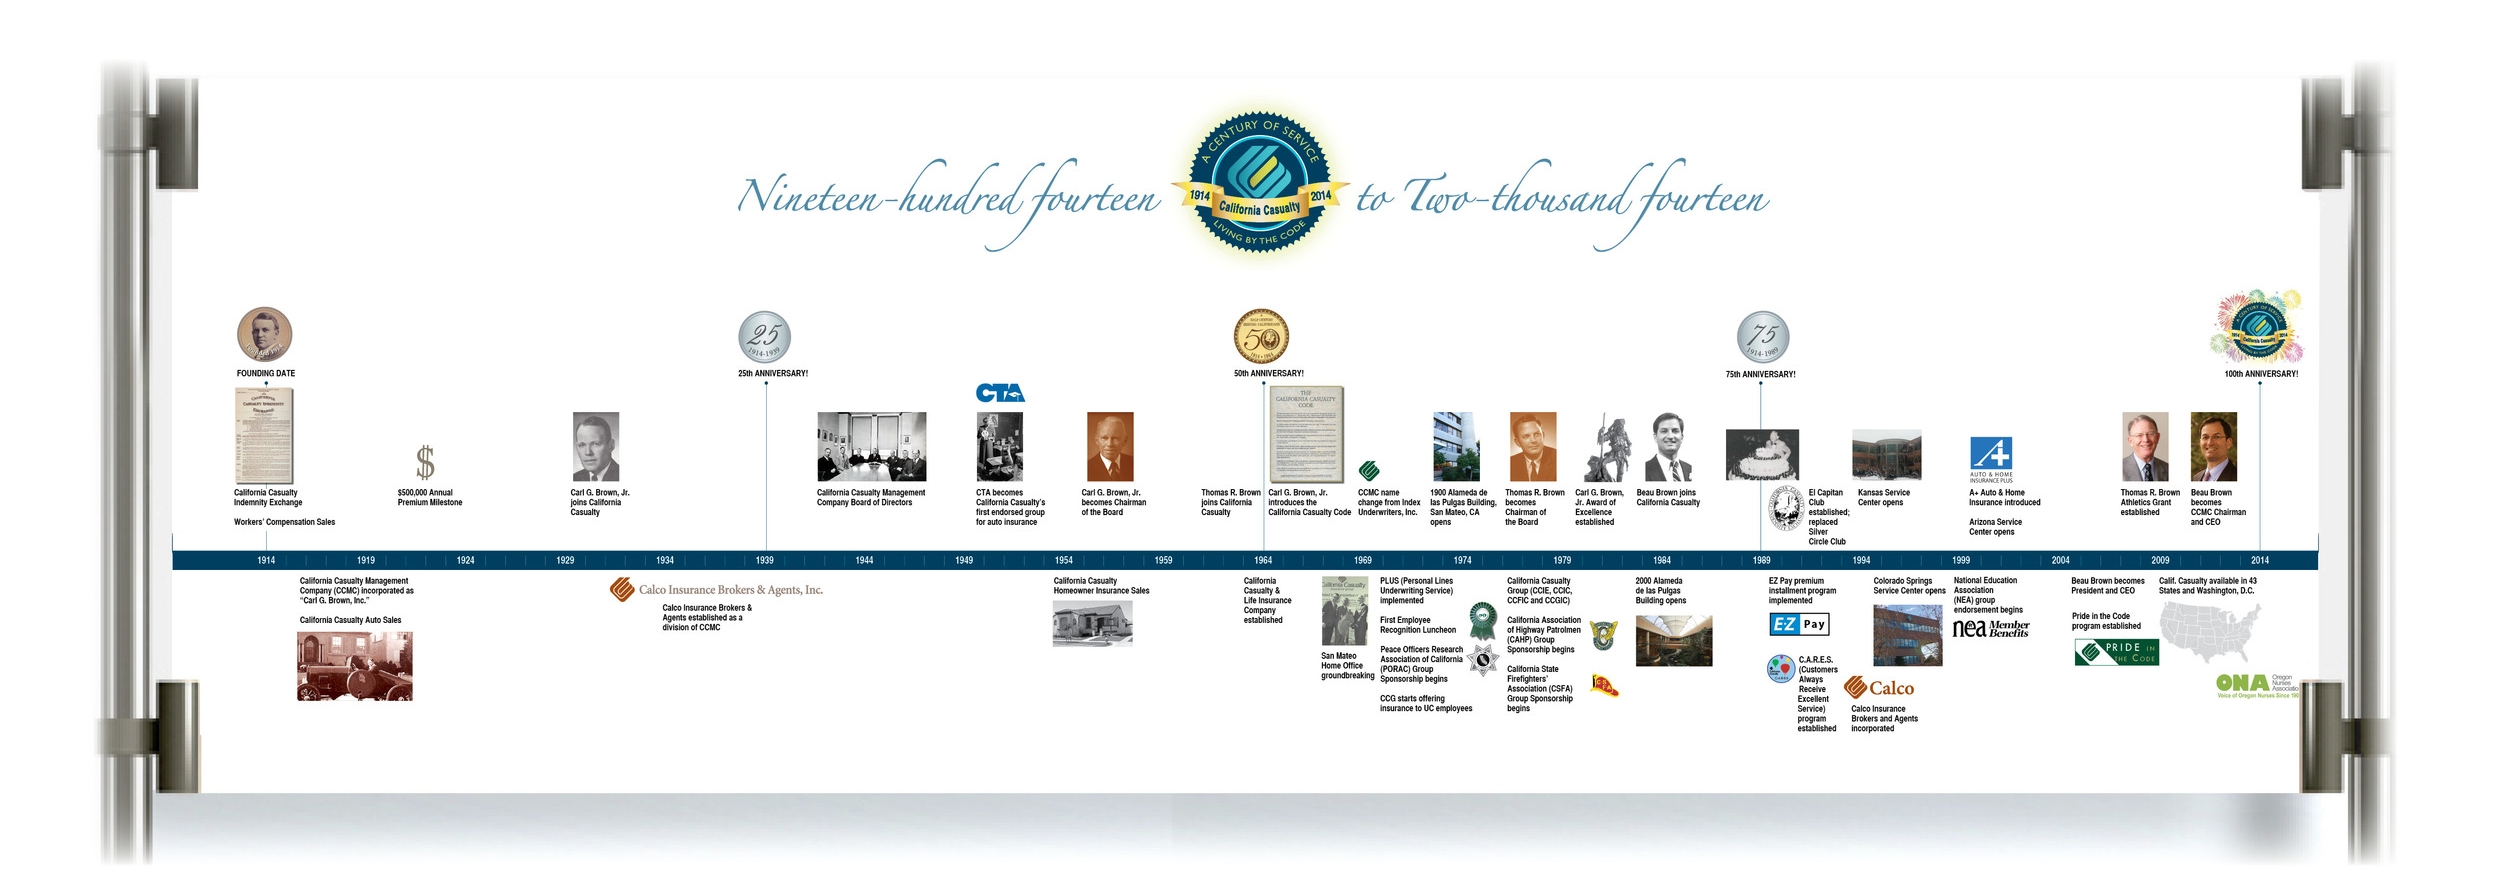 100 Year Project: Campaign promoting California Casualty Insurance Company's100 years of service.